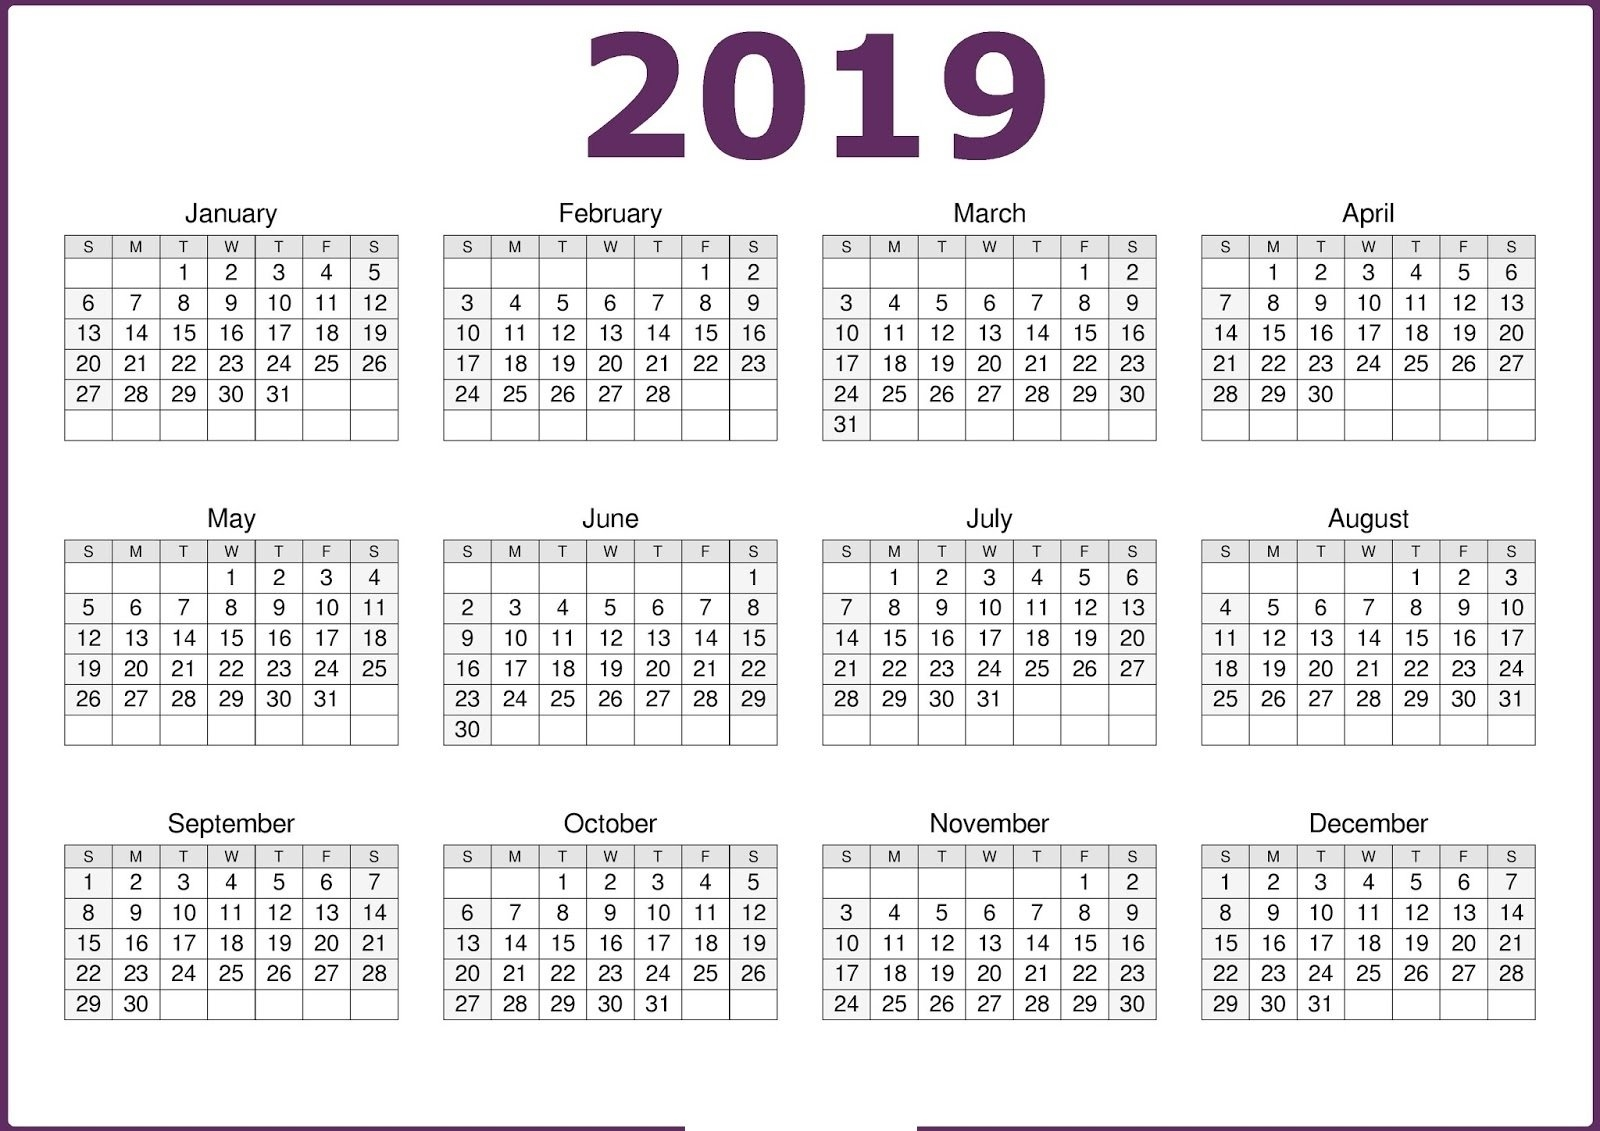 Get Free Blank Calendar Pages 2019 Templates | August 2018 Calendar 2019 Calendar Qld Template